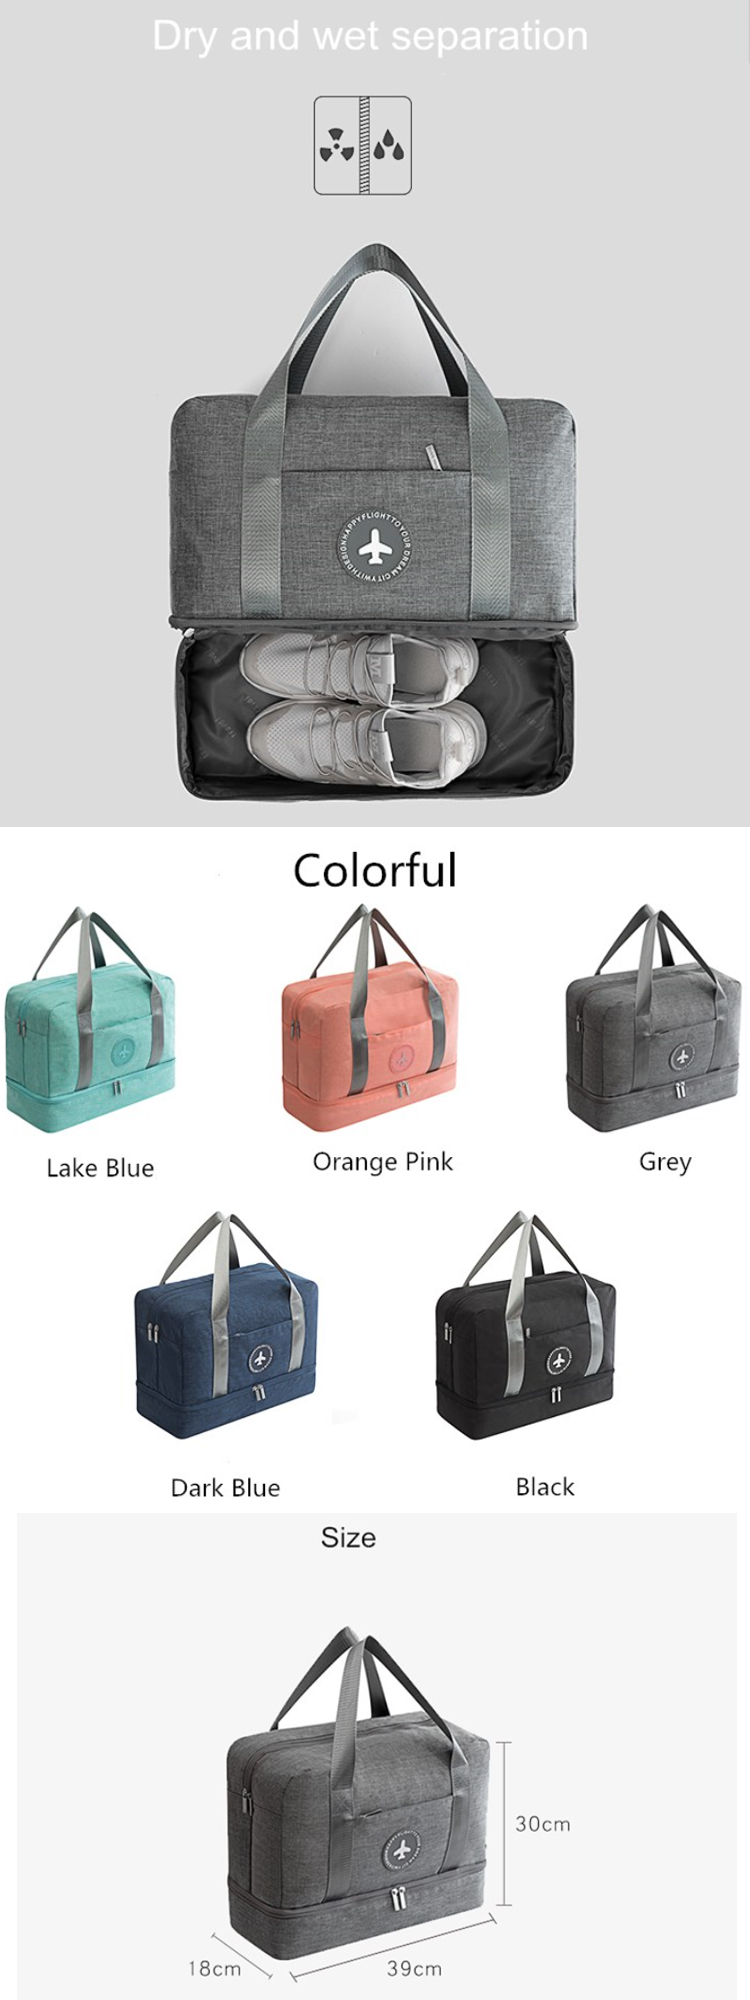 Osgoodway2 Portable Travel Duffel Bag Large Capacity Dry and Wet Separation Gym Bag for Swimming